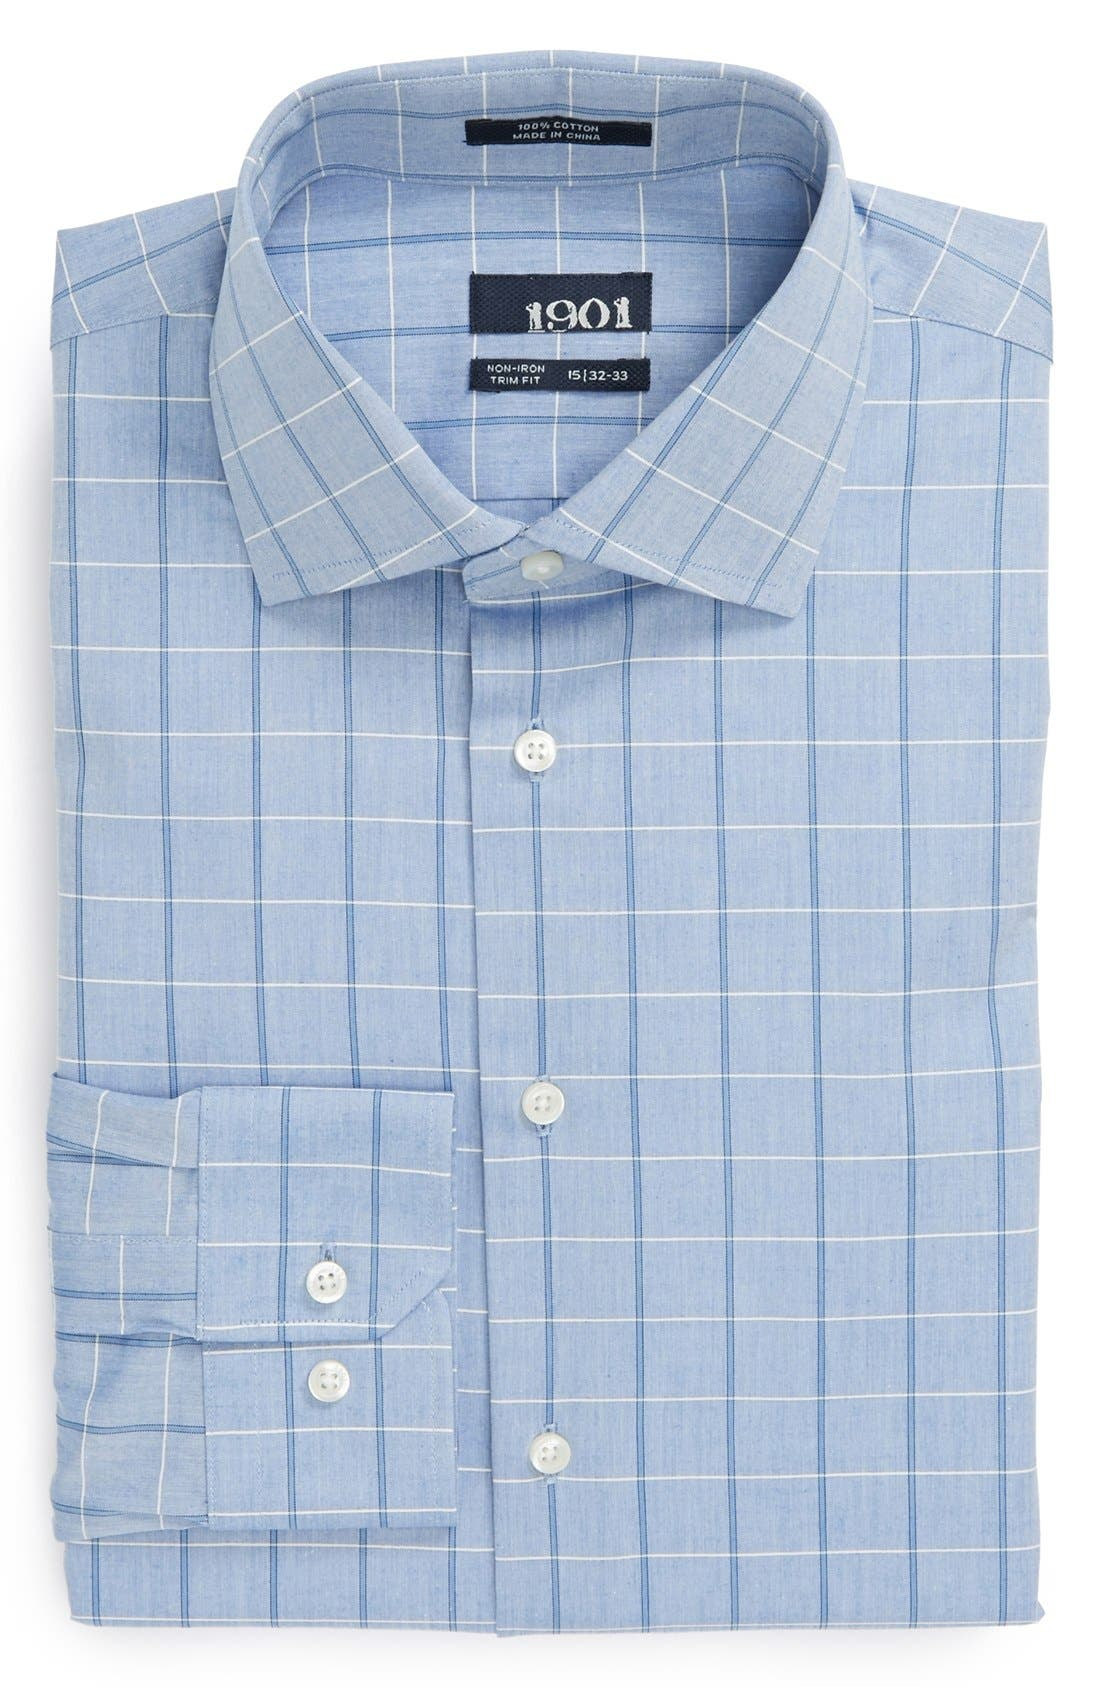 Main Image - 1901 Trim Fit Non-Iron Check Dress Shirt